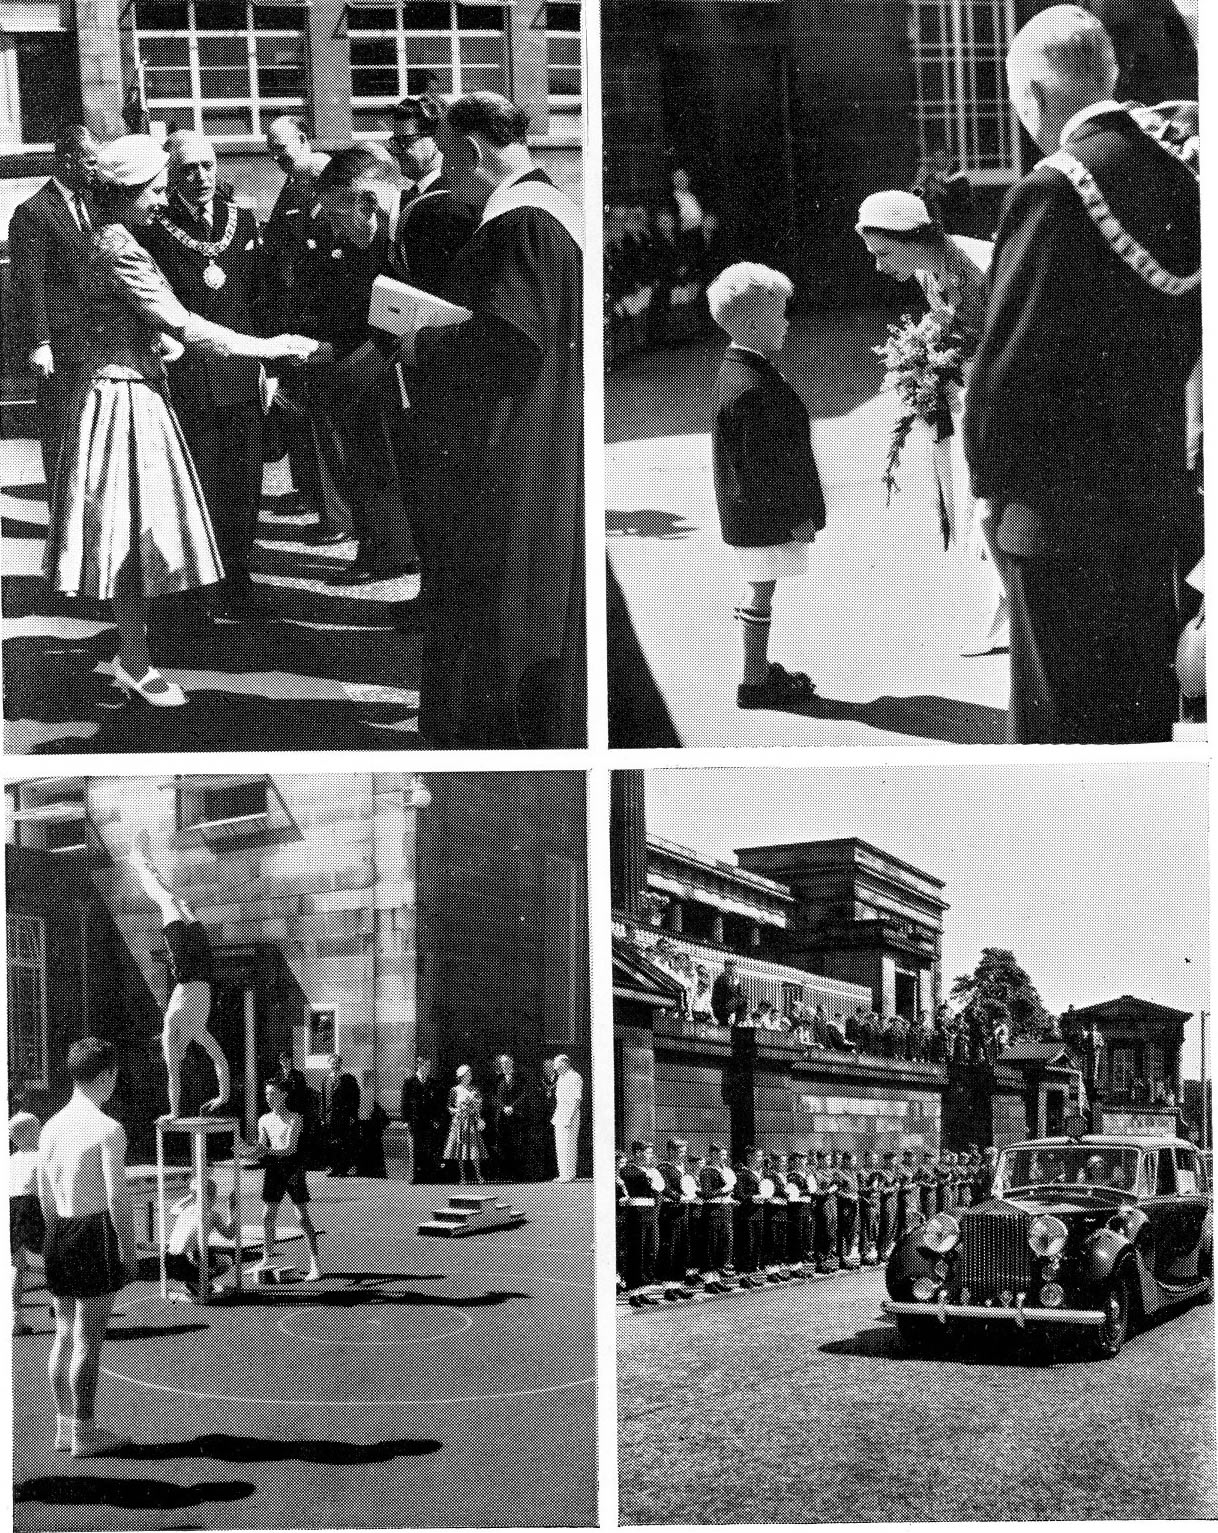 Royal Visit 4th July 1958